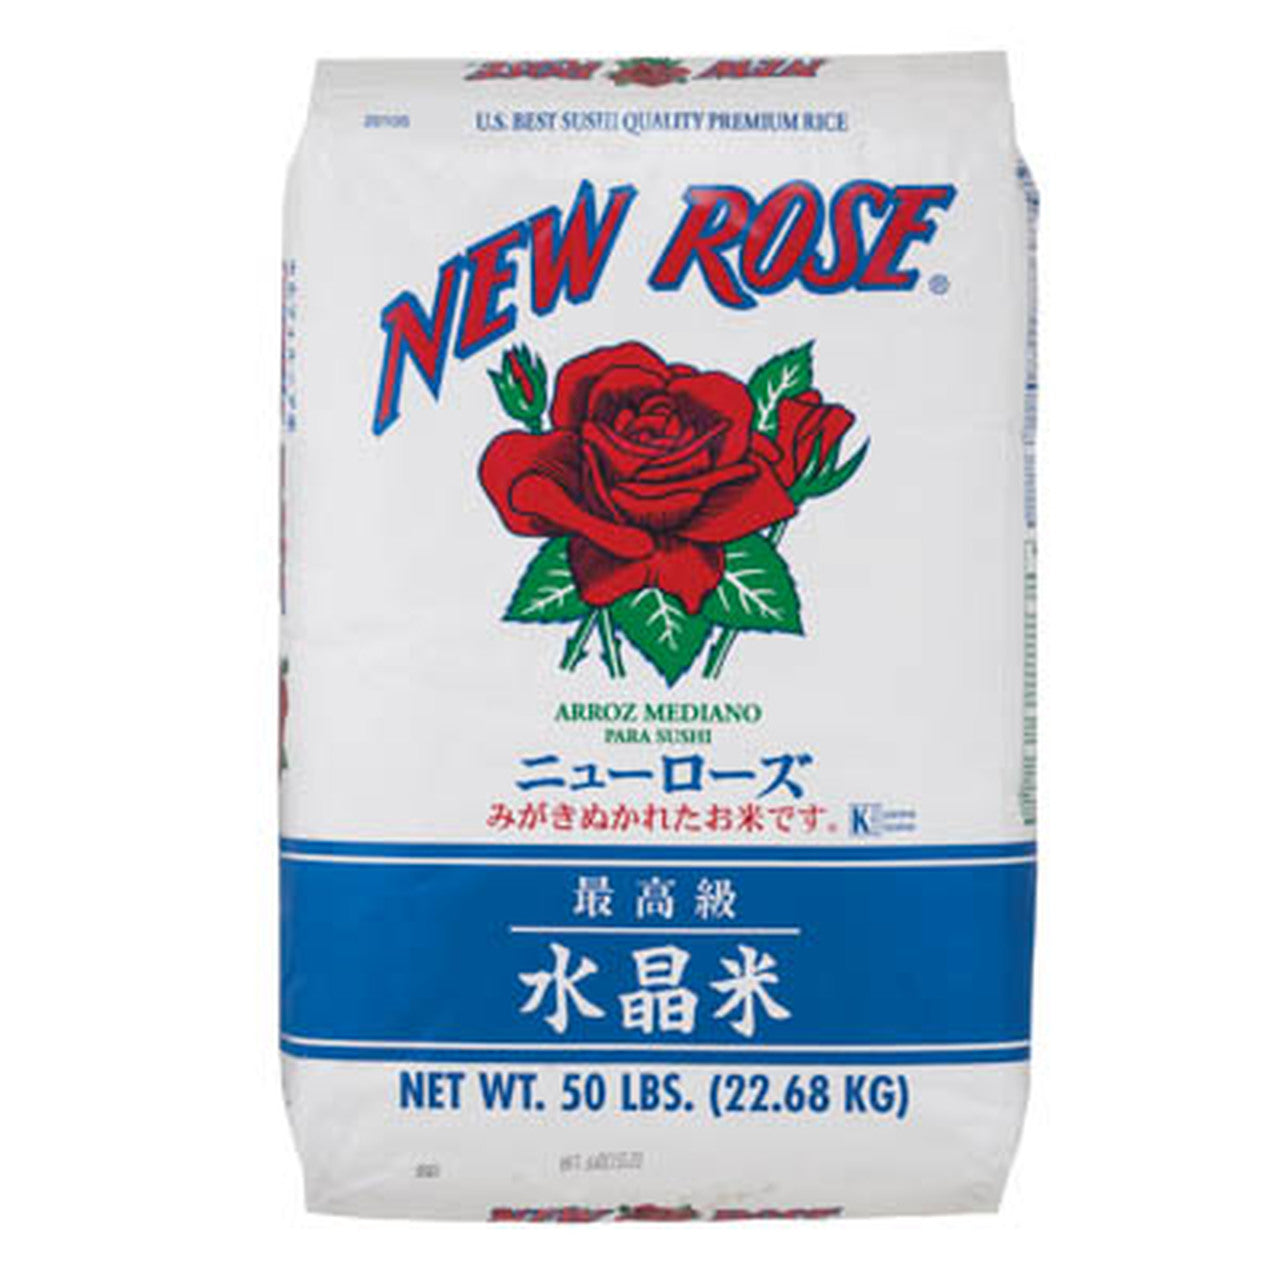 New Rose Medium Grain White Rice 50lbs (22.68kg) (SKU: 20105)